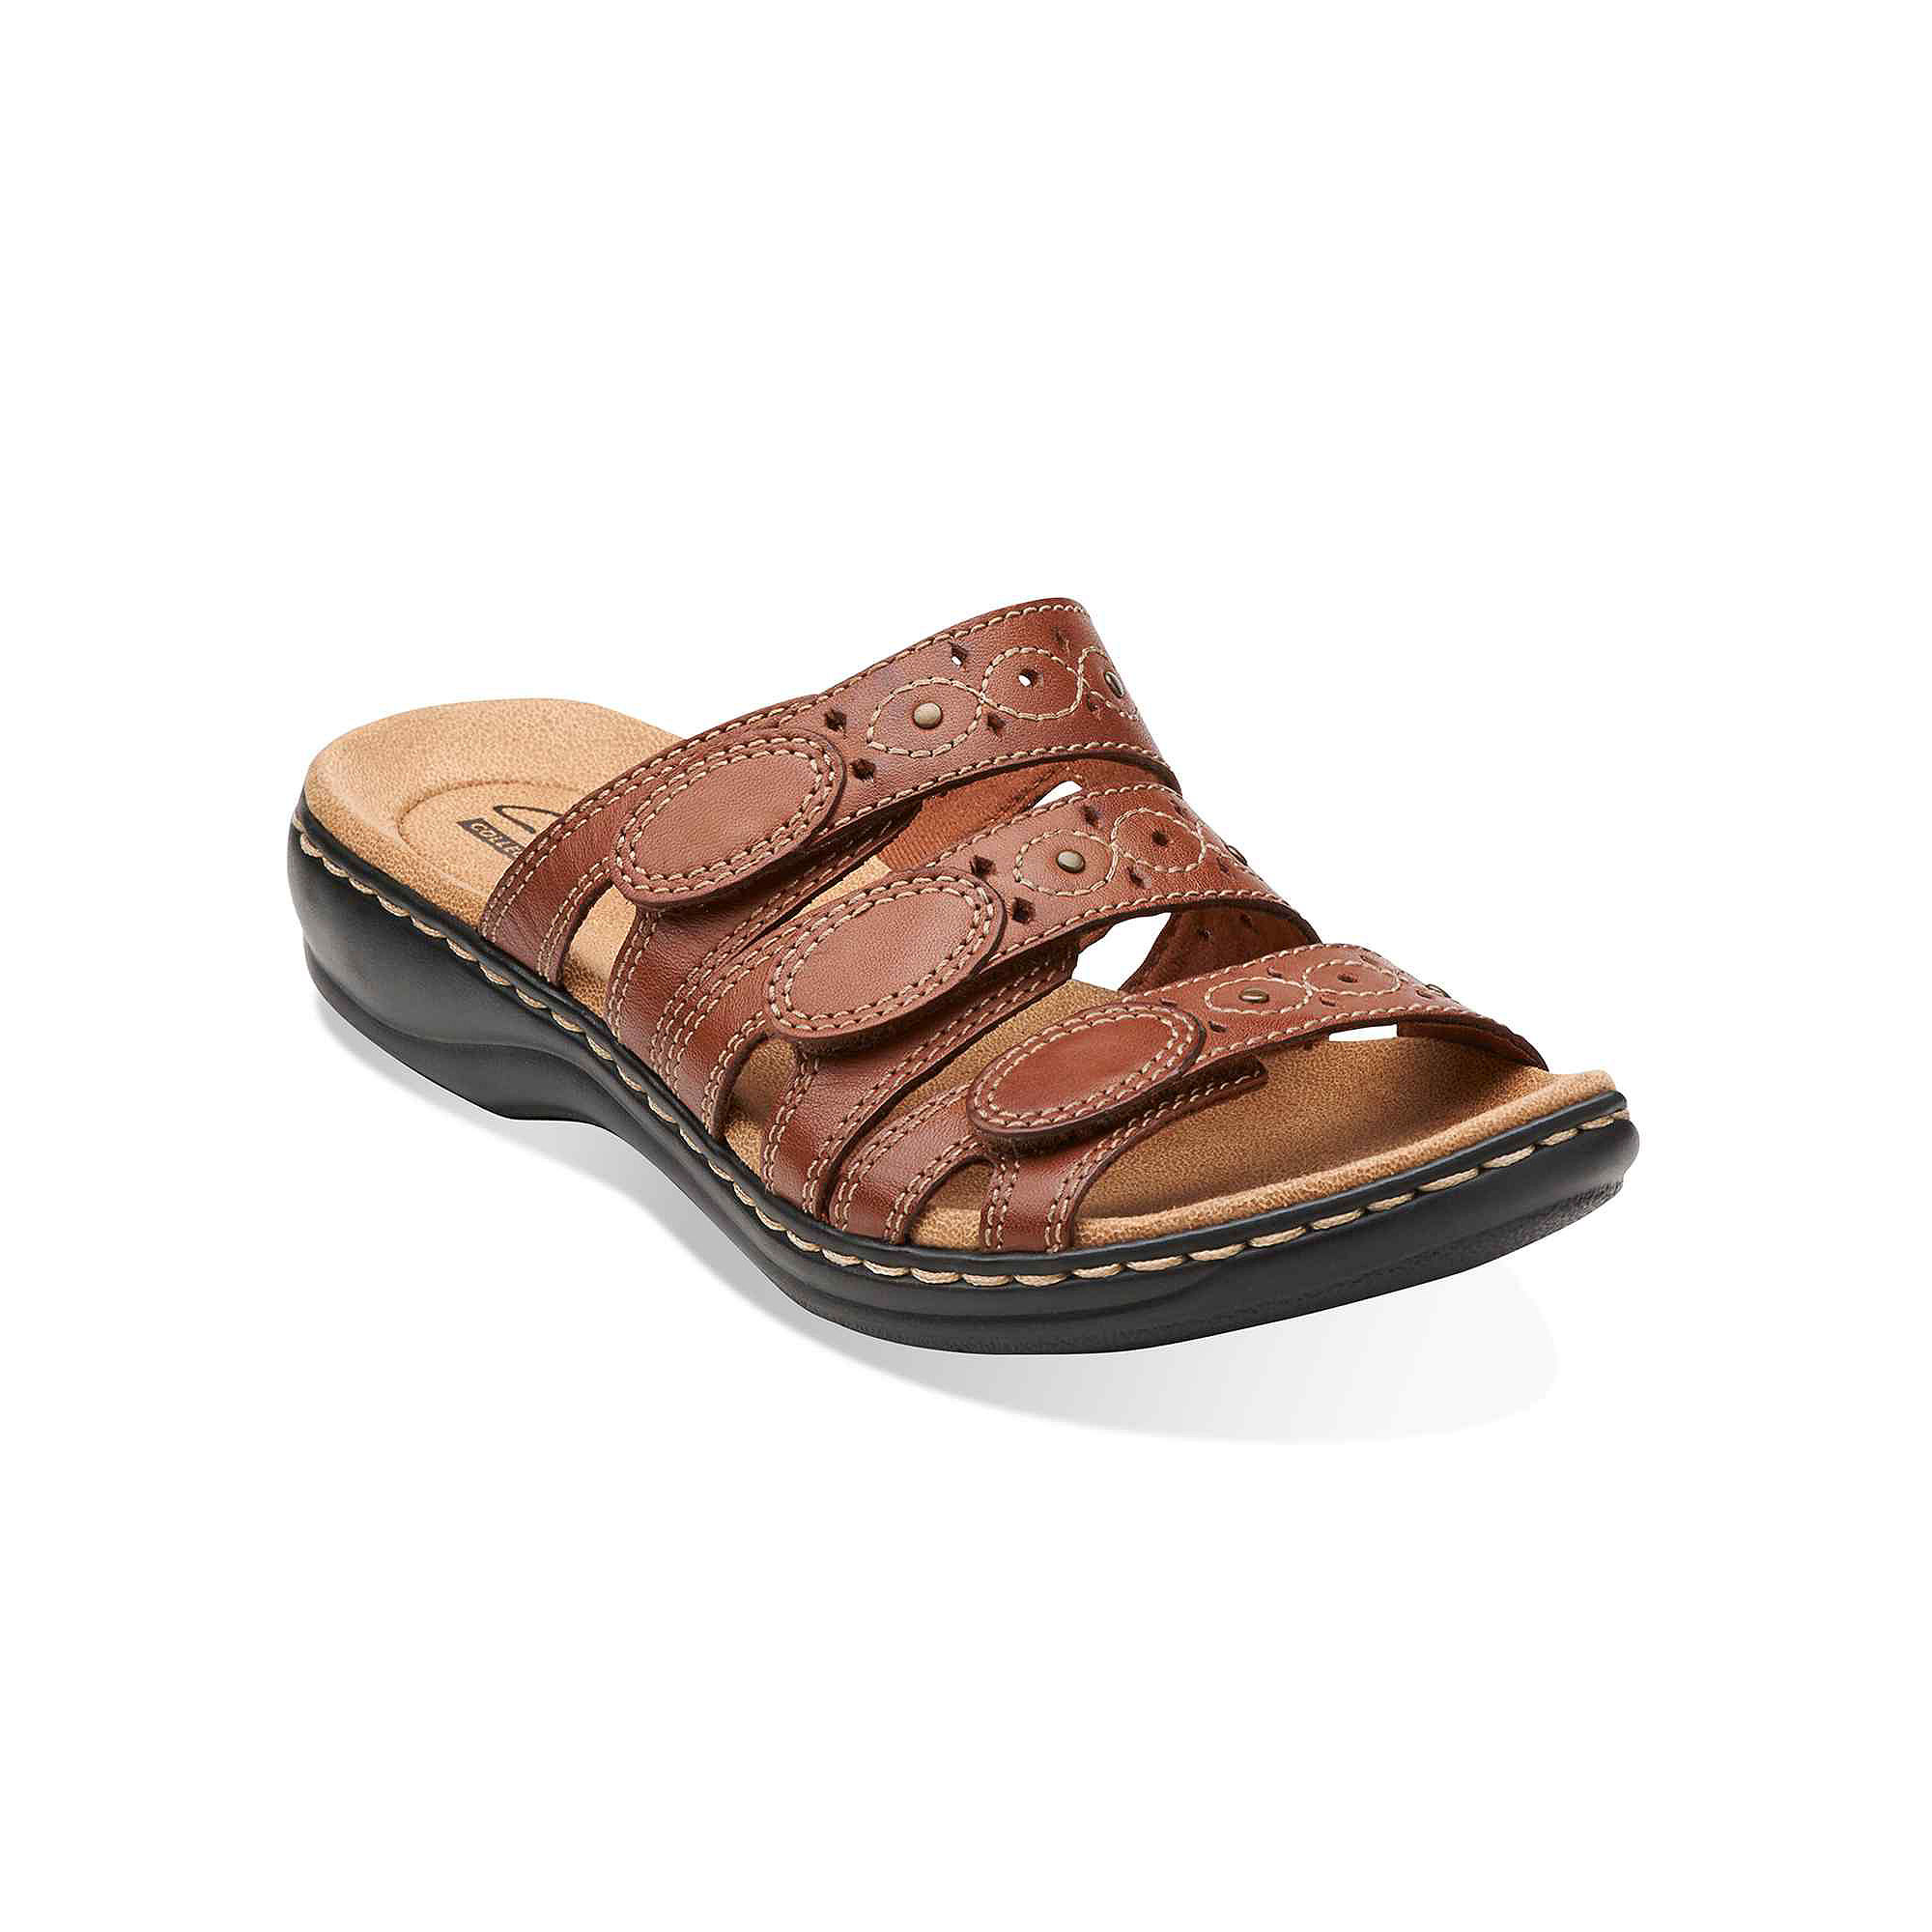 f13082d59bb1 UPC 889303109272 product image for Clarks Leisa Cacti Womens Open-Toe Leather  Sandals